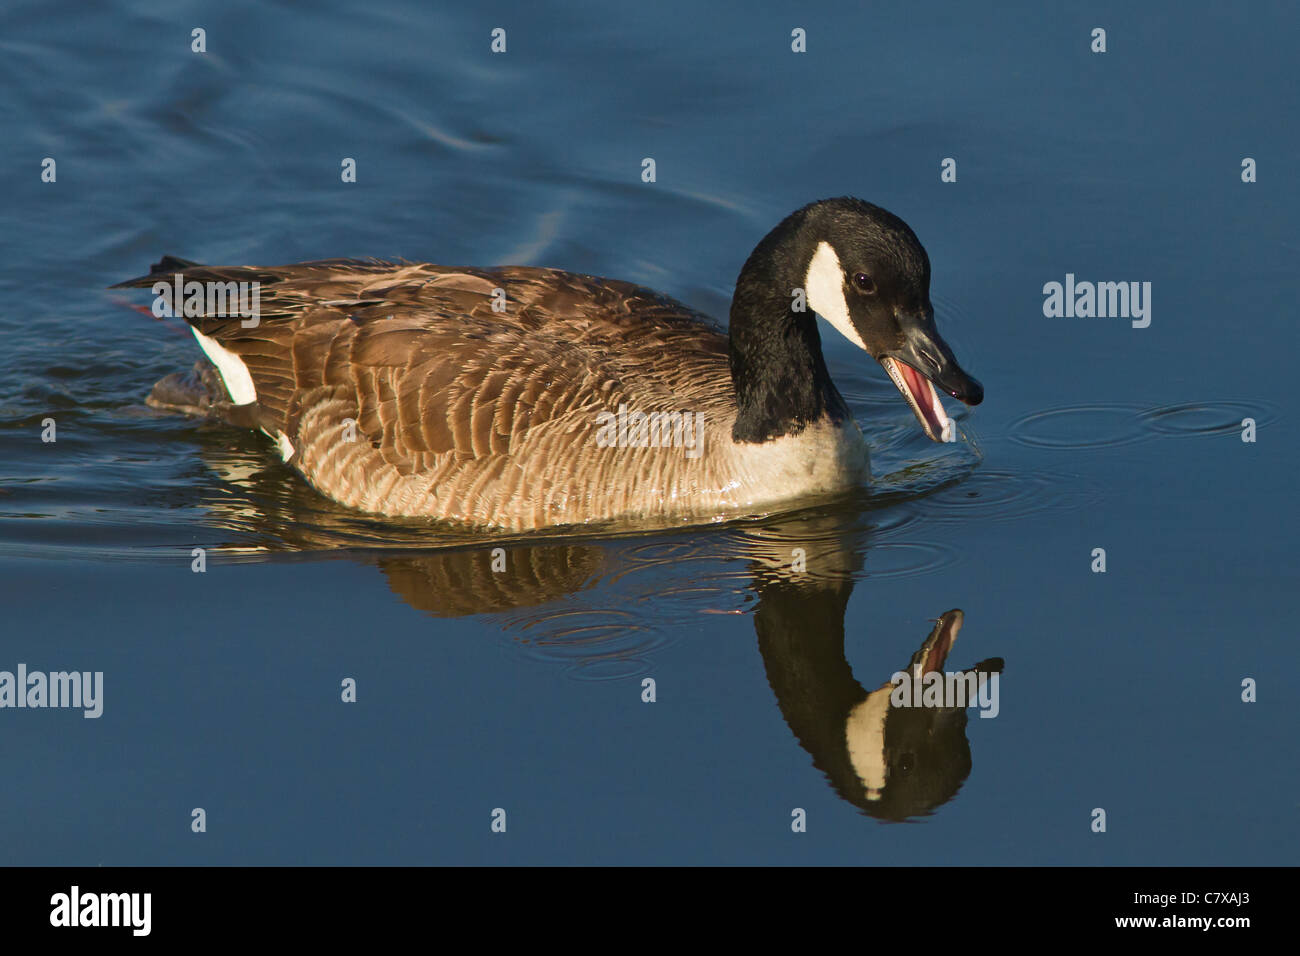 Honking Canada Goose swimming in river with beautiful reflection - Stock Image